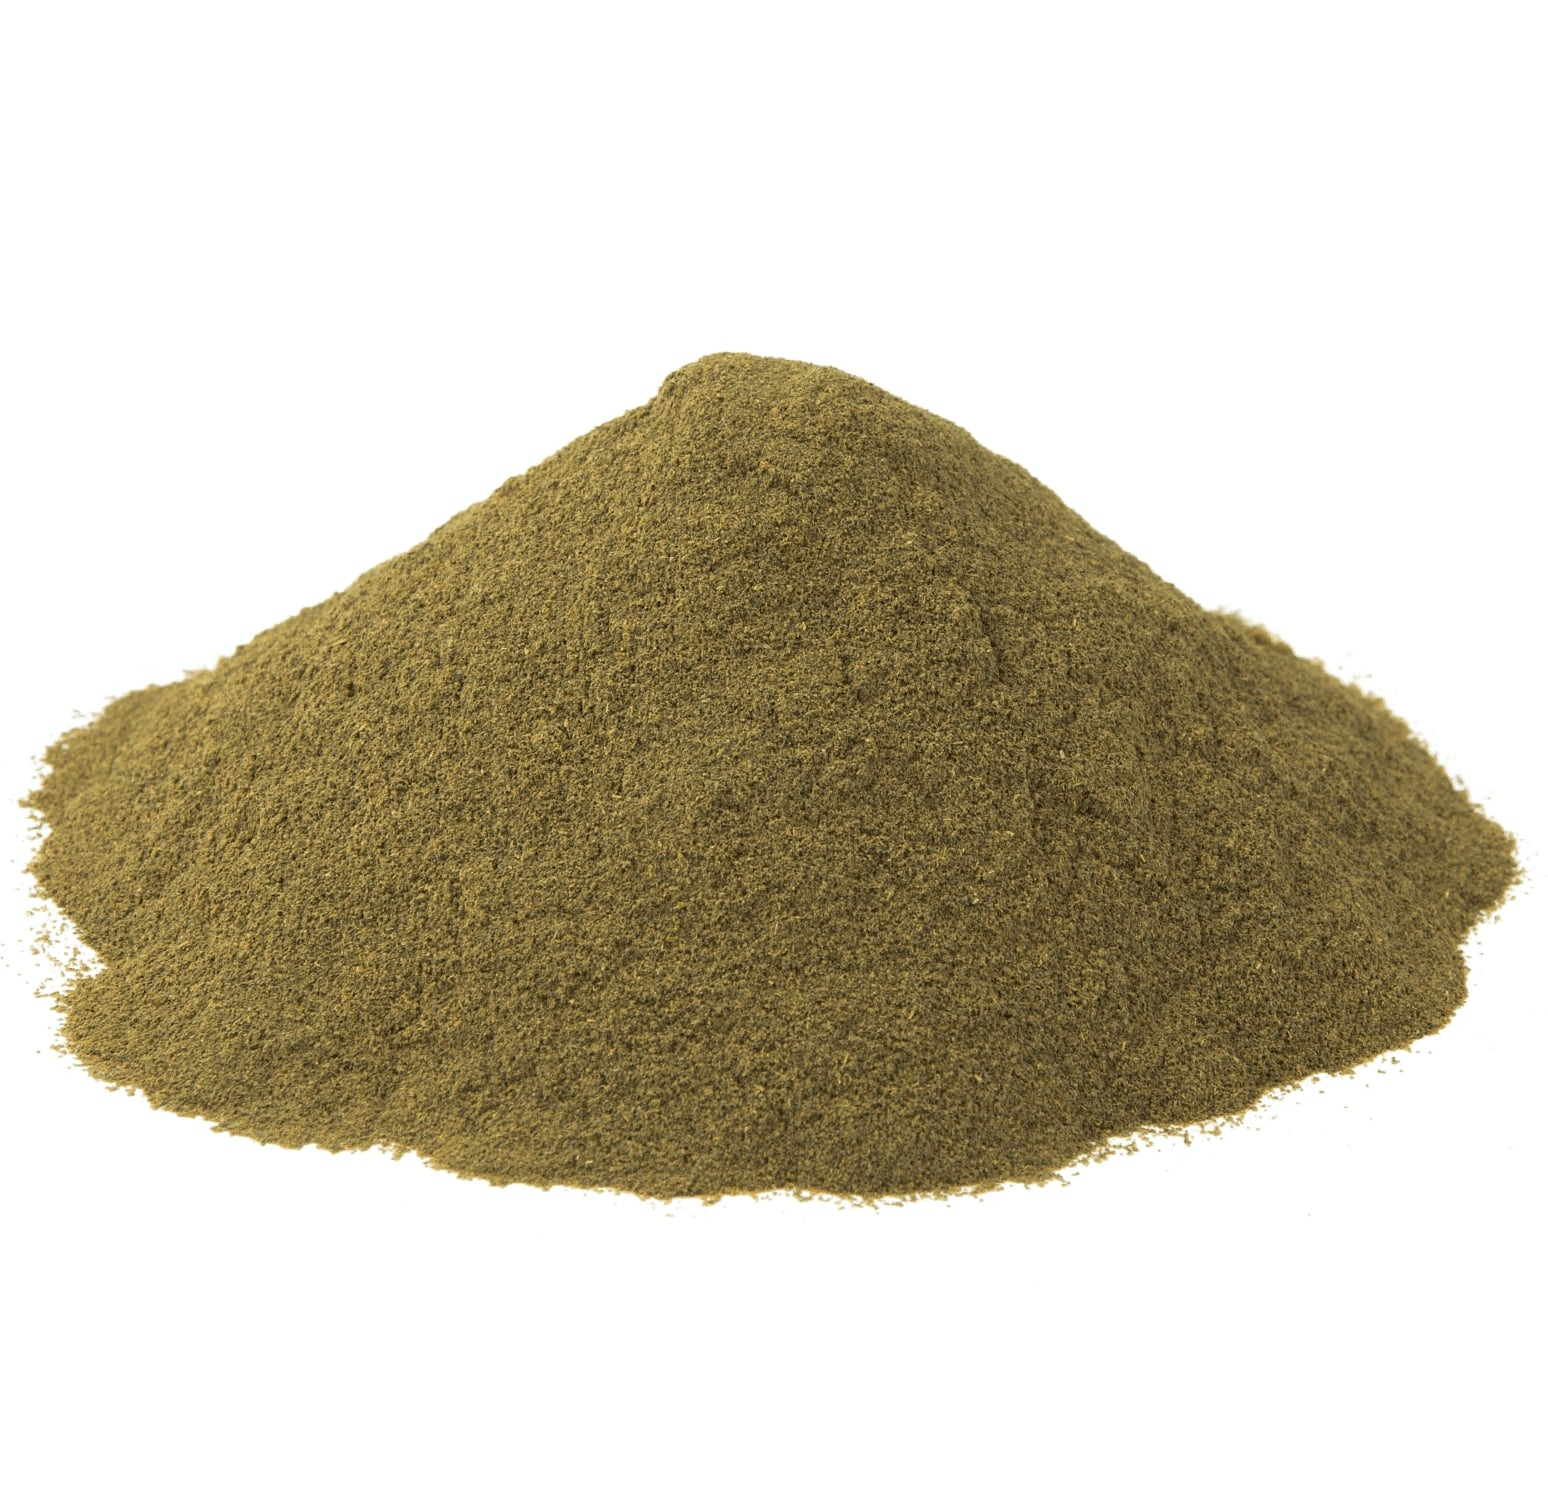 Red Thai Kratom for Sale